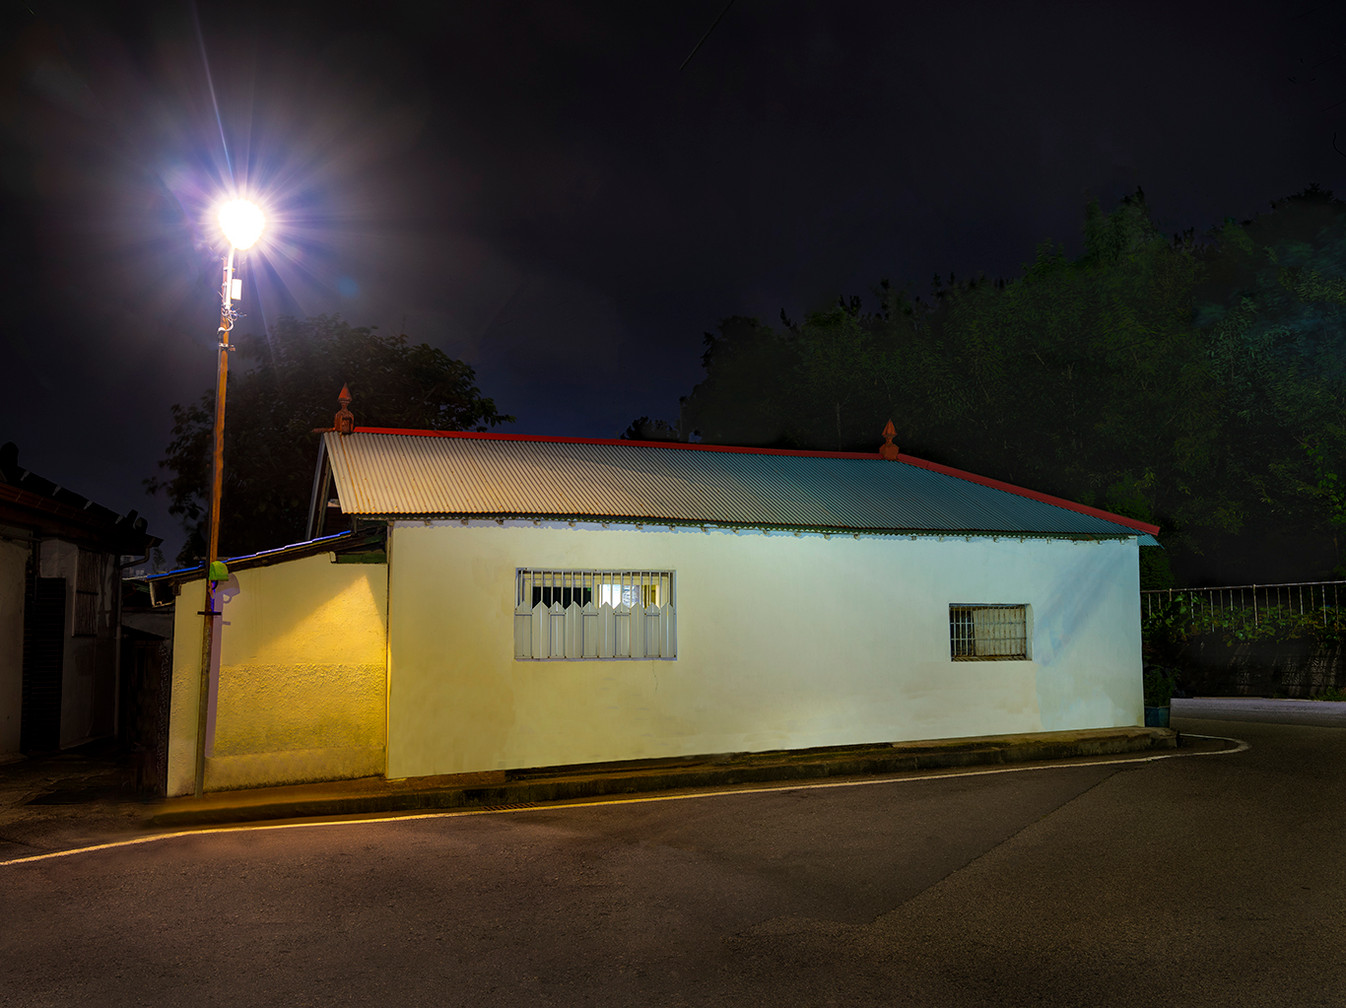 The Houses at Night #30